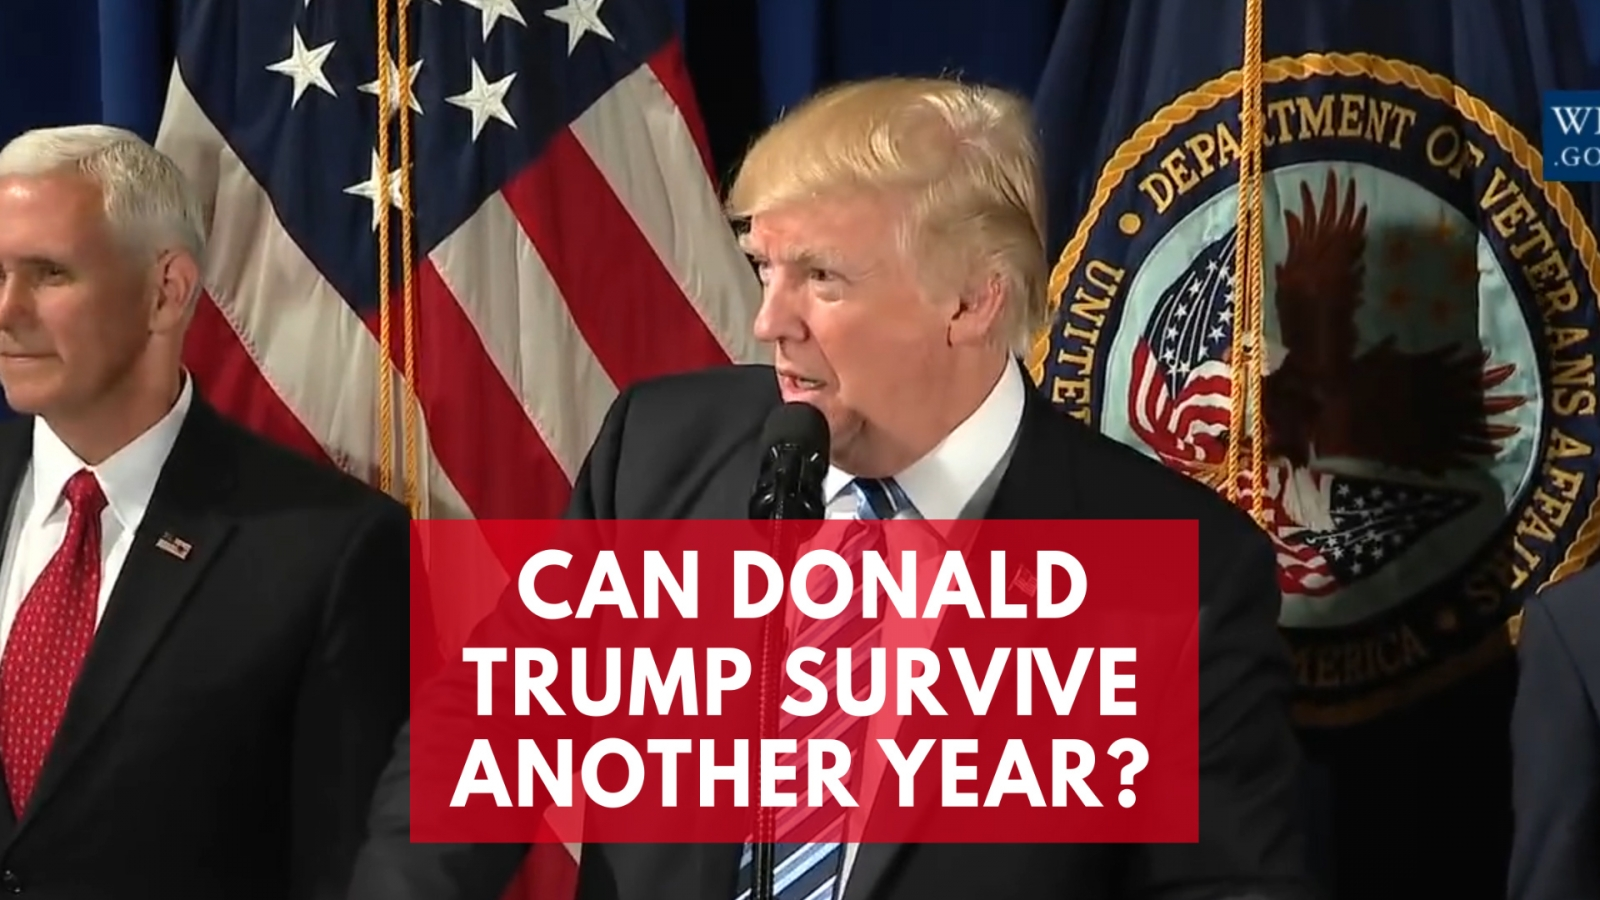 Can Donald Trump survive another year?